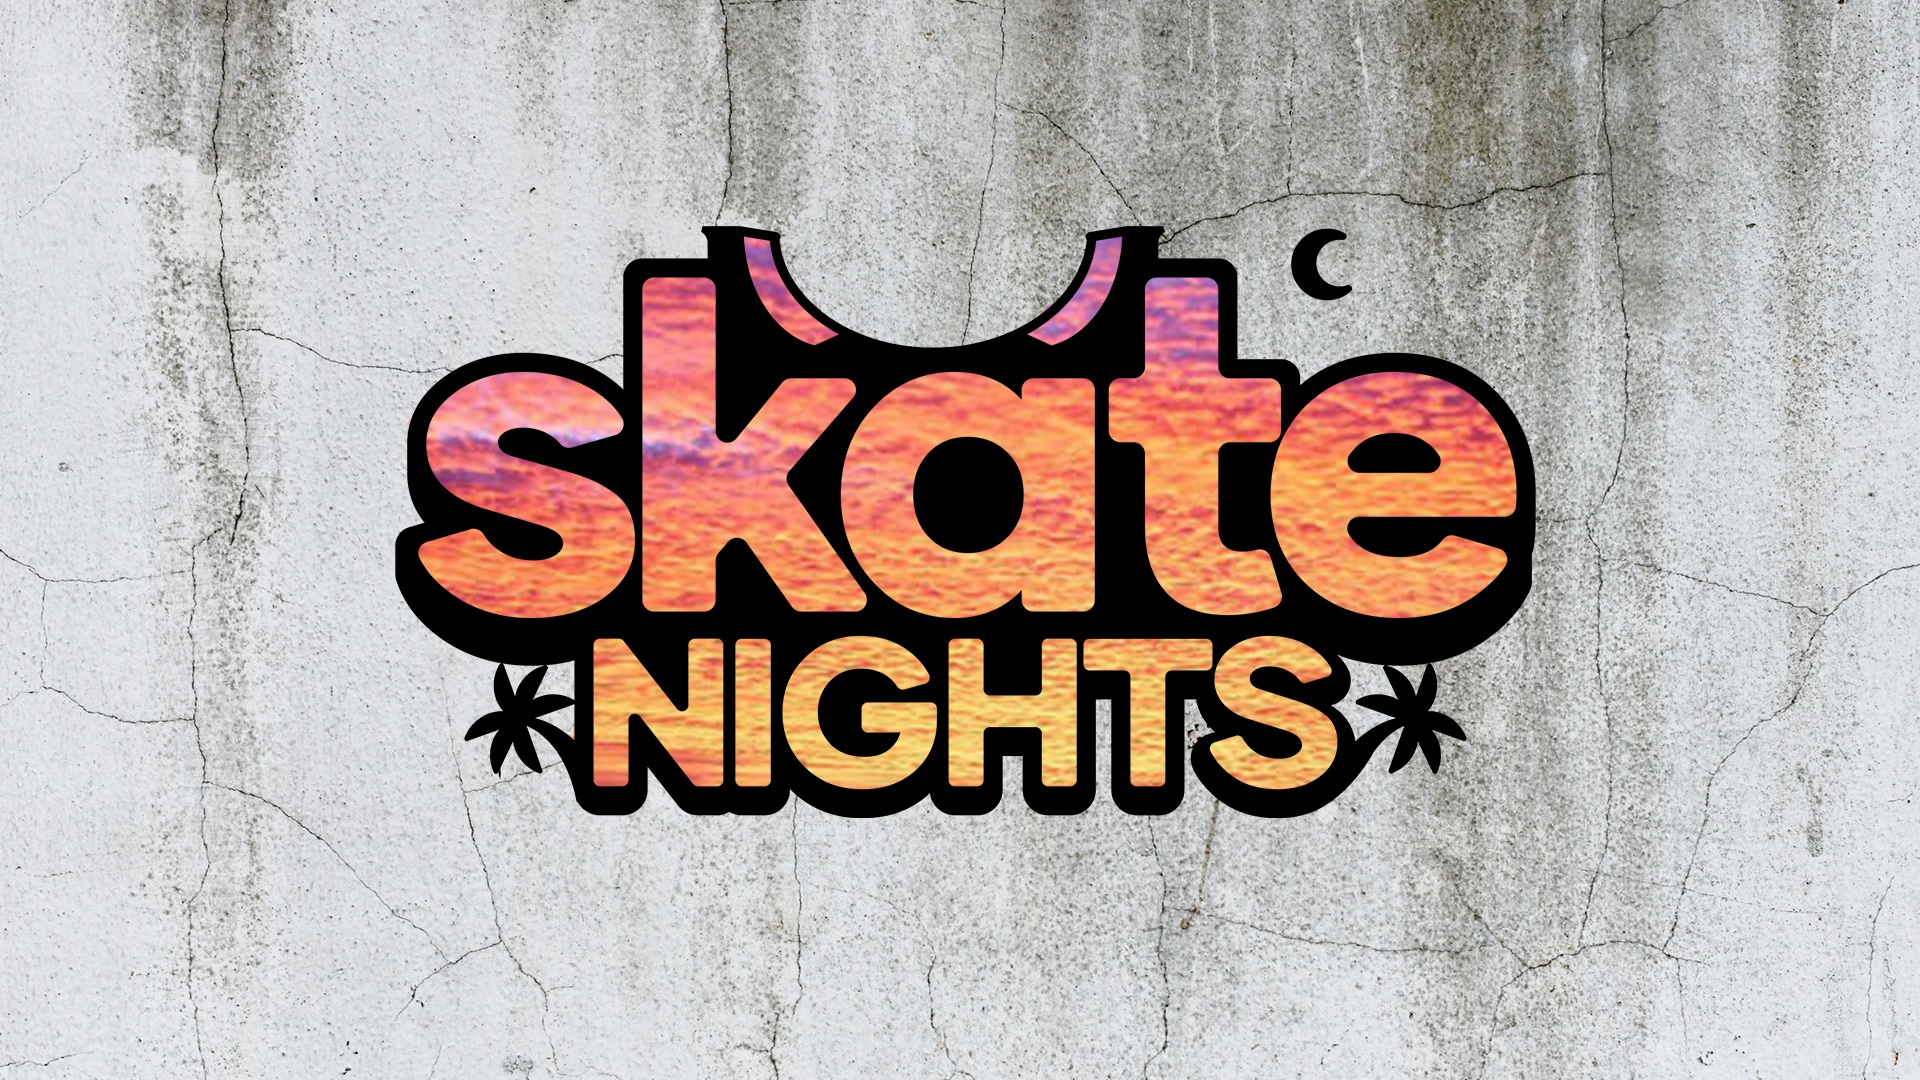 SKATE NIGHTS@ JINGILI - MARCH 6 - NOVEMBER 27, 2019